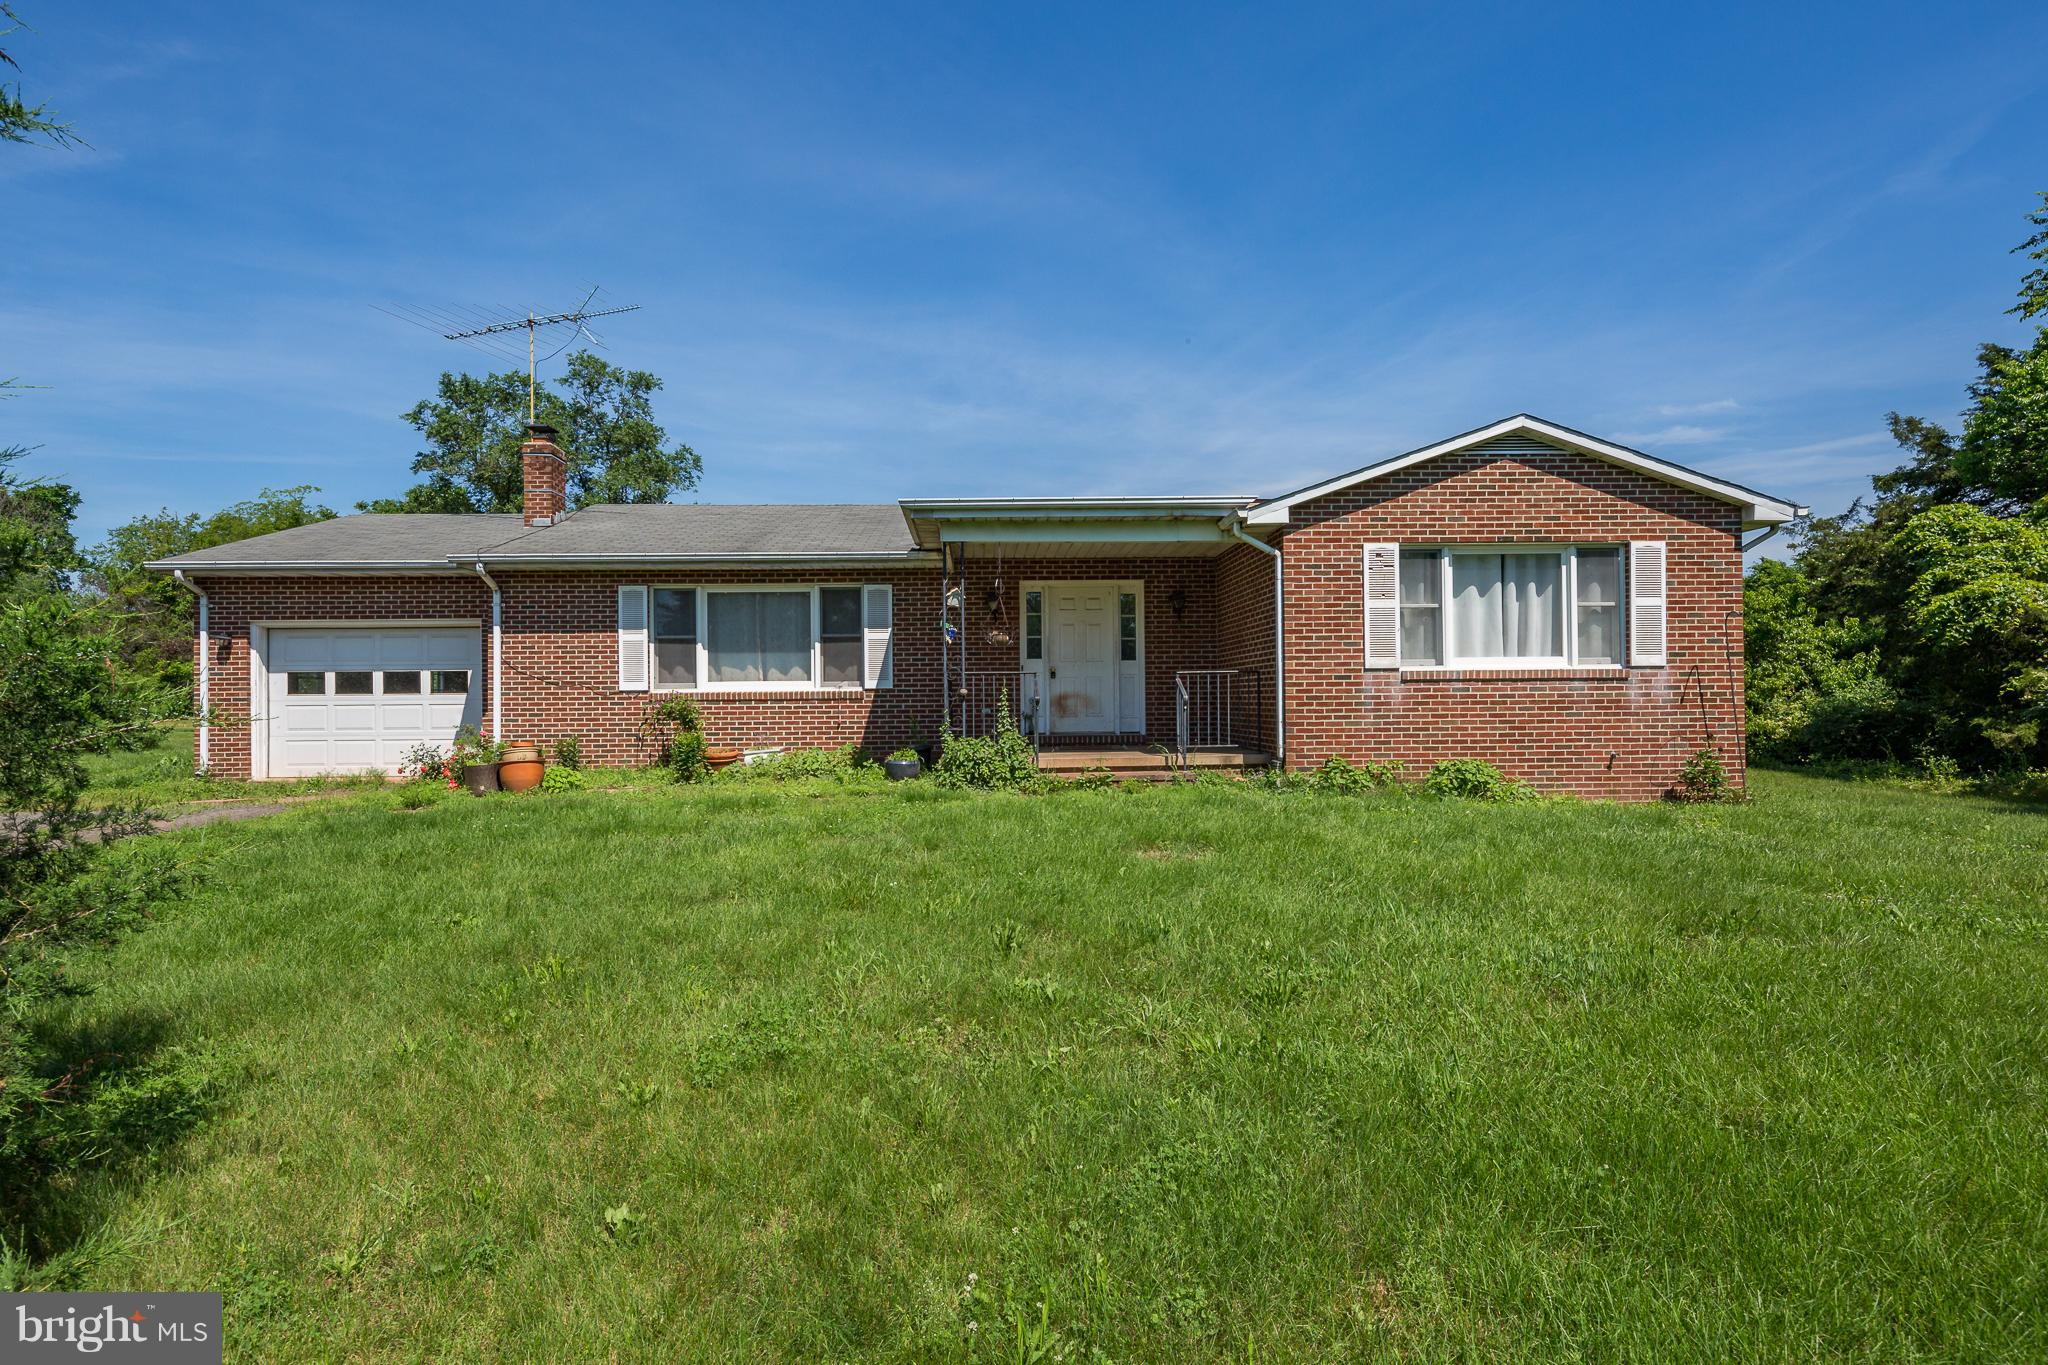 SOLID BRICK RAMBLER 3 BEDROOM 2 BATH- ATTACHED GARAGE-FULL UNFINISHED BASEMENT..PROPERTY IN NEED OF REMODEL -HOME OFFERED AS-IS.- NO HOA OR COVENANTS.  GREAT COMMUTER LOCATION ROUTES 28, 29 & 17.